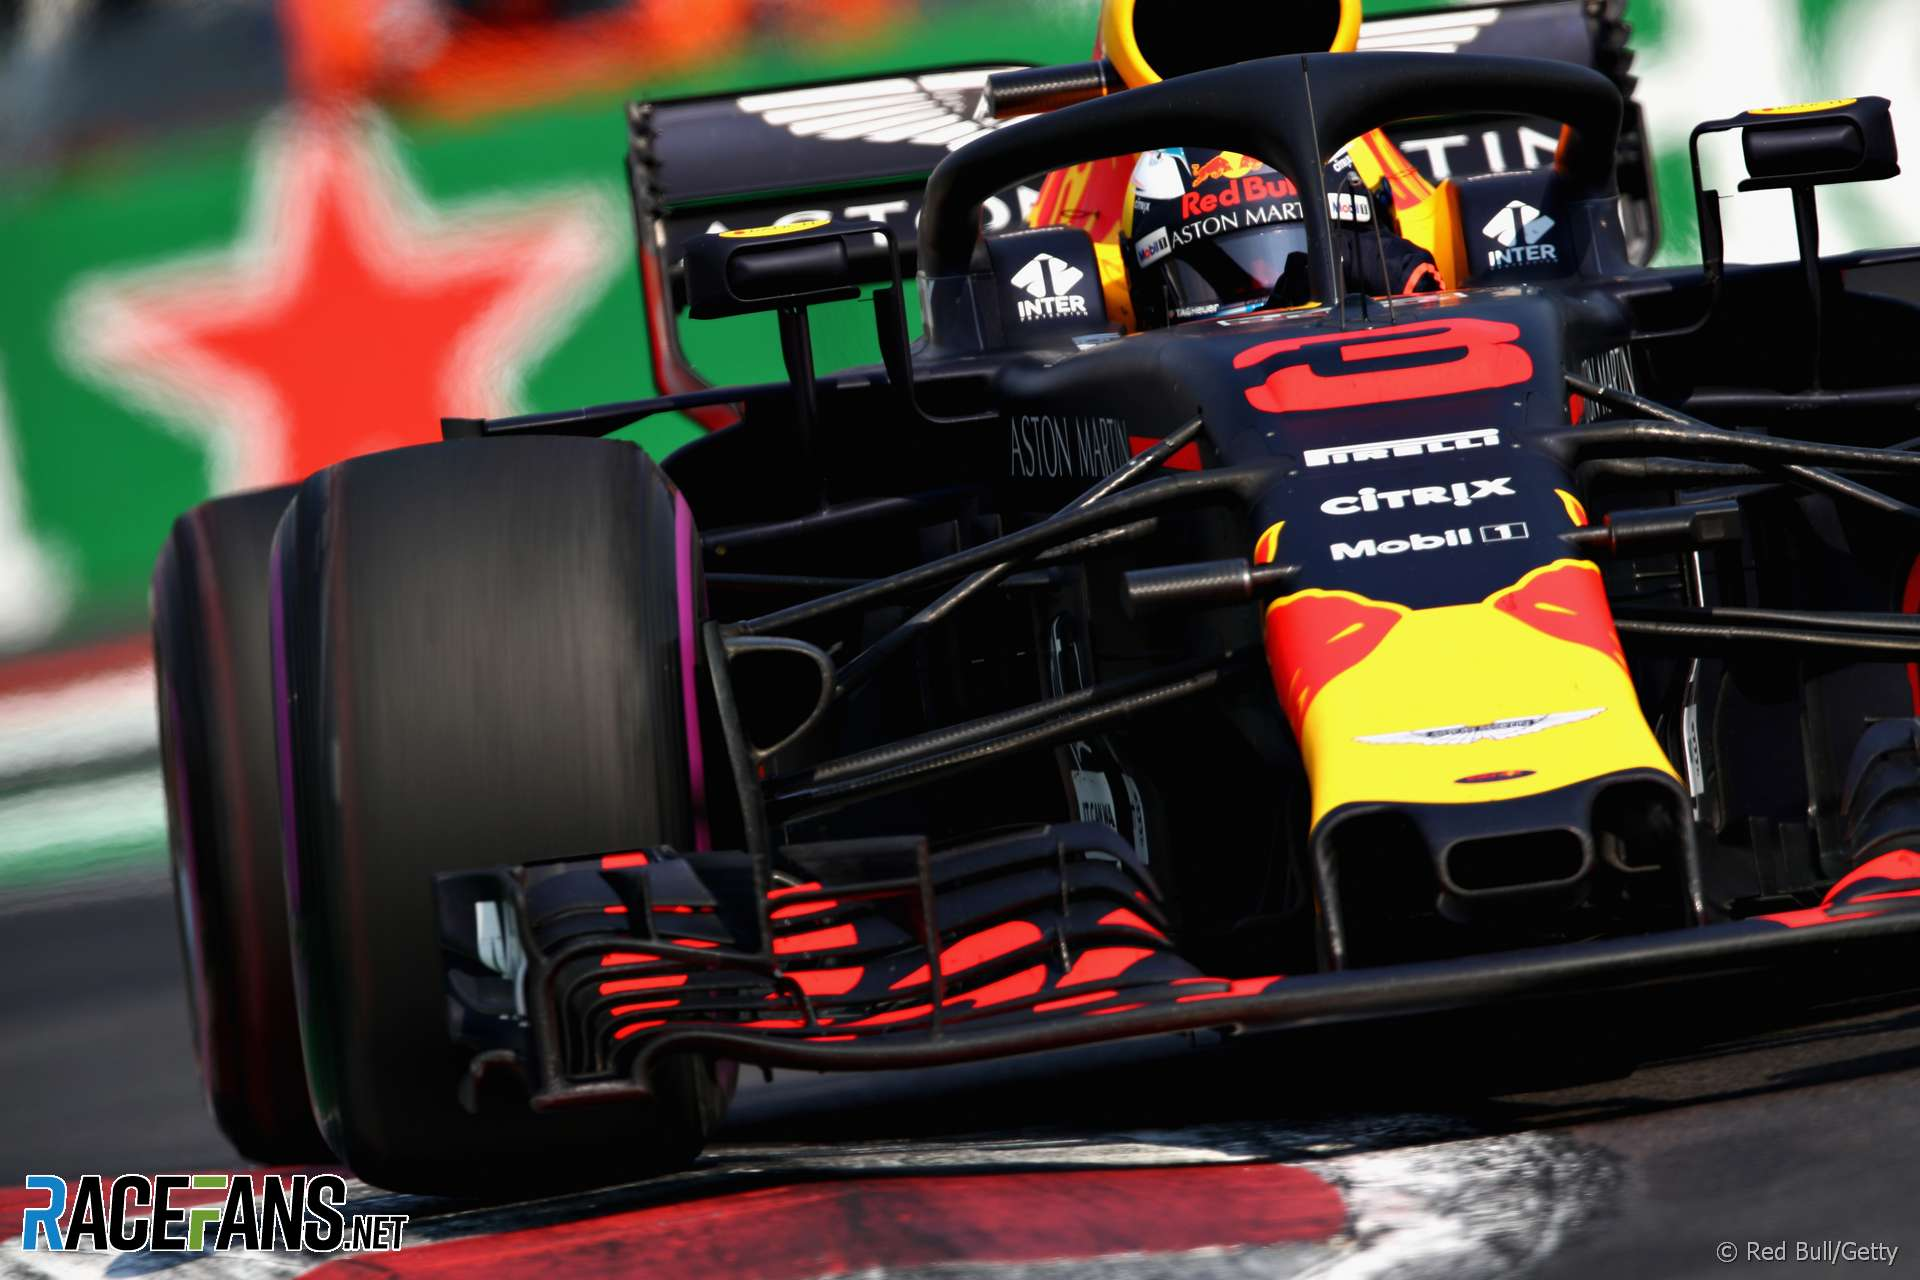 3d4117f80bf Ricciardo suffered repeat of Verstappen s clutch failure - RaceFans